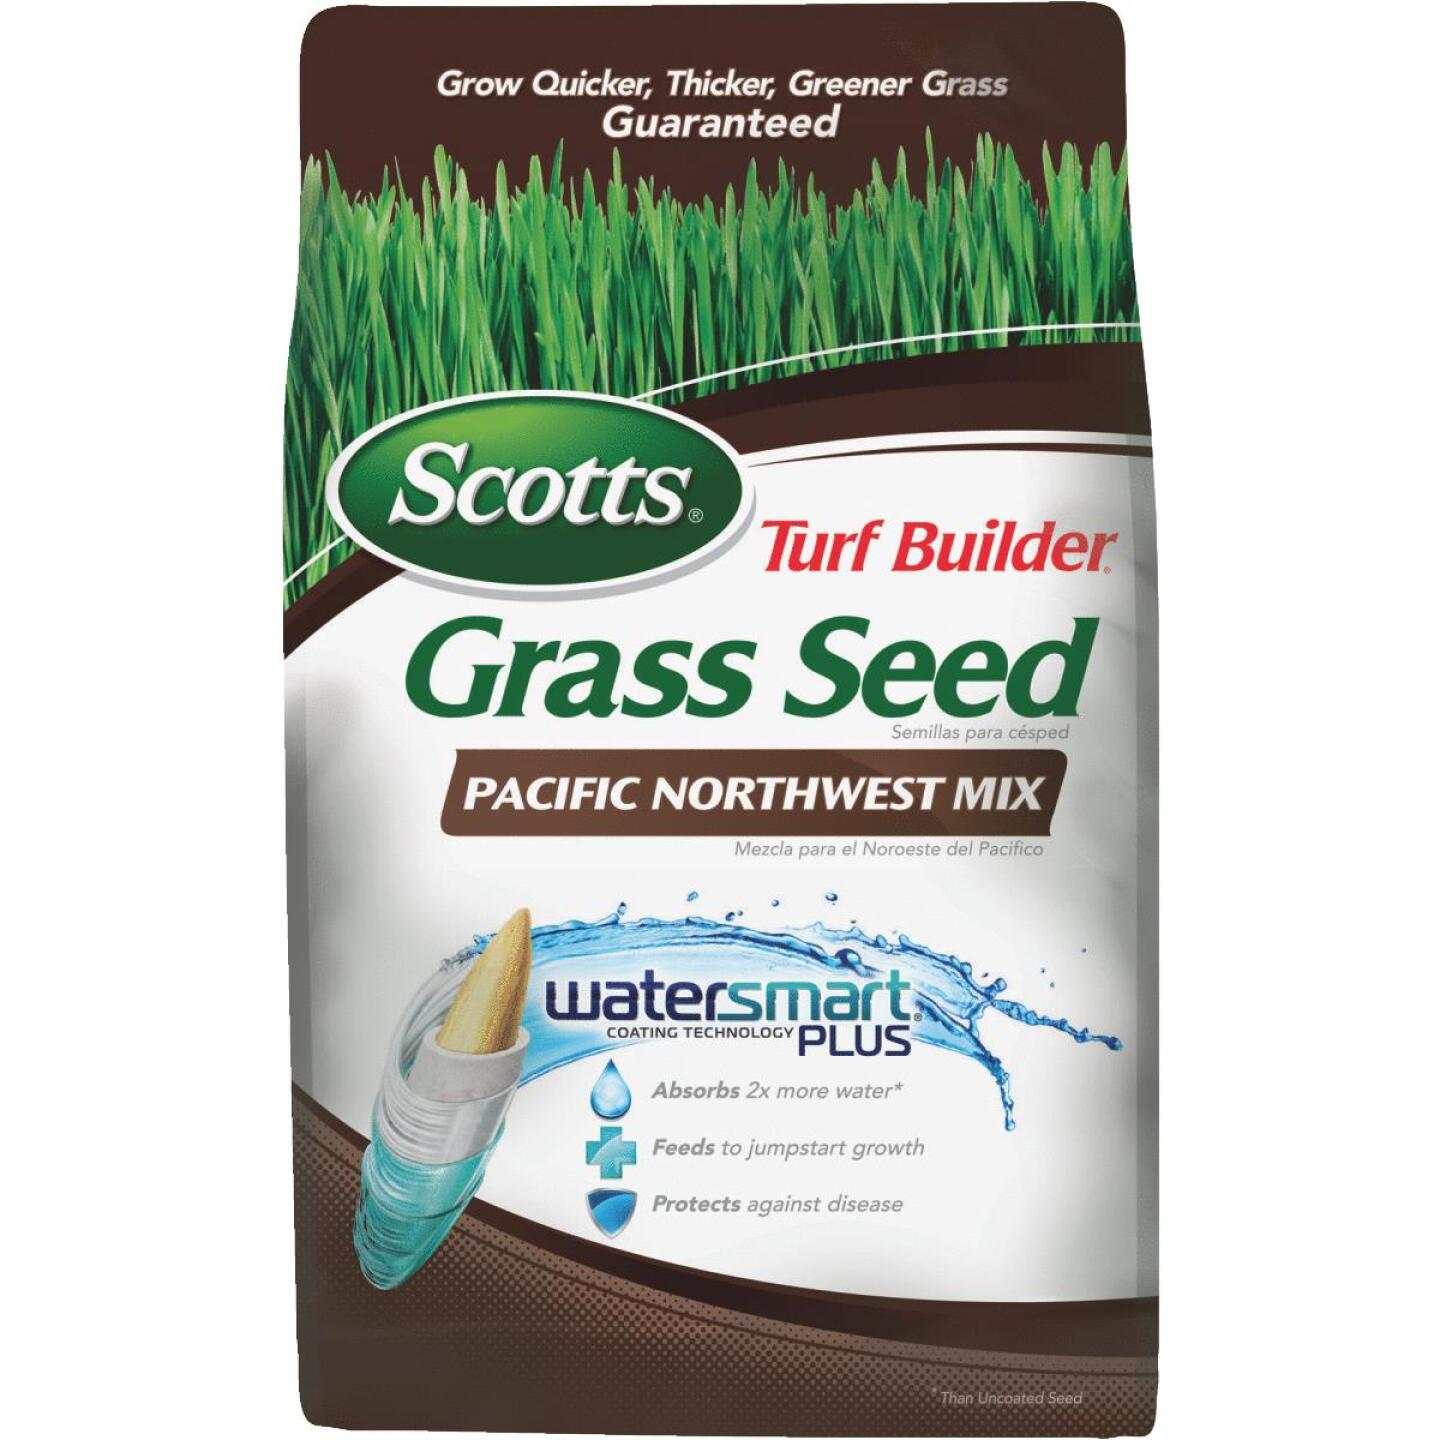 Scotts Turf Builder 3 Lb. Up To 1000 Sq. Ft. Coverage Pacific Northwest Grass Seed Image 1